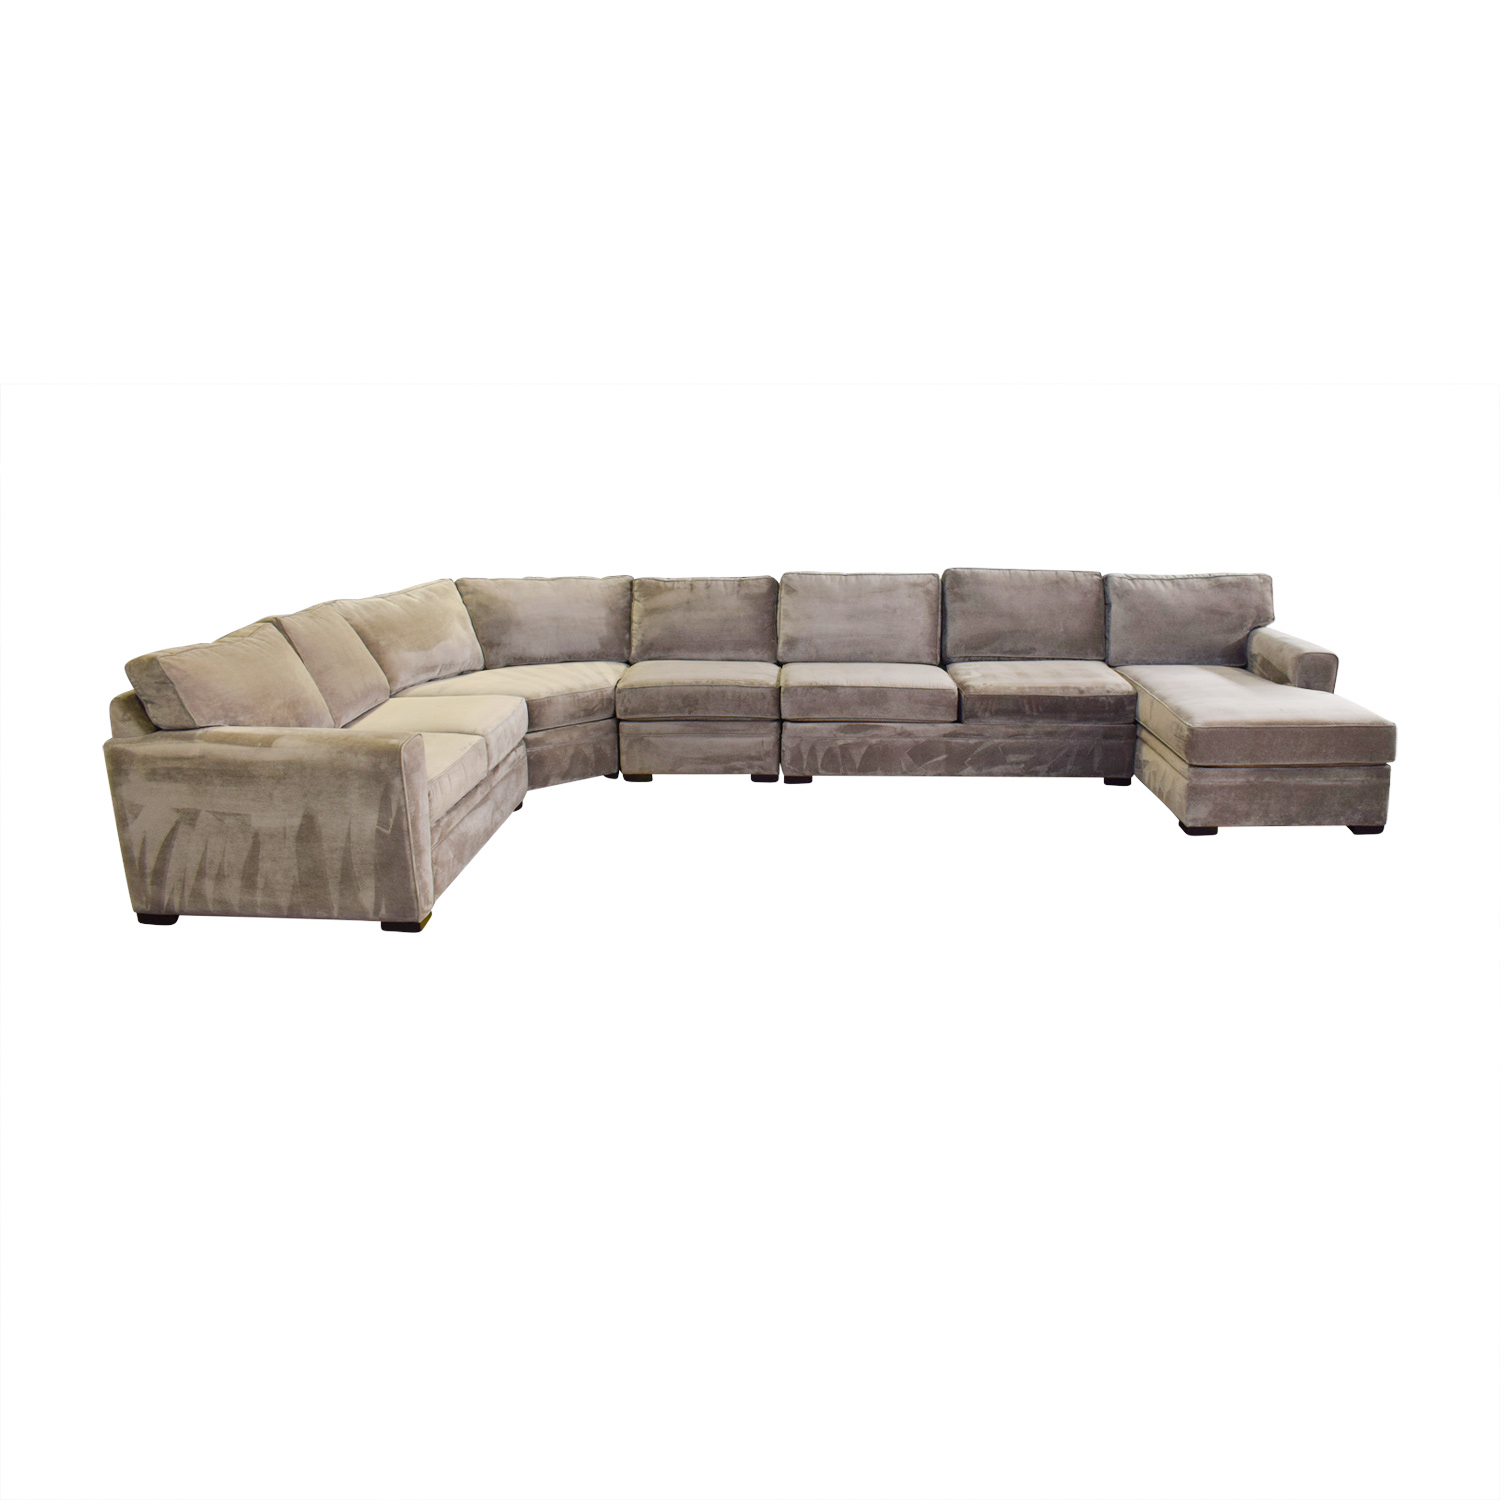 Raymour & Flanigan Five Piece Sectional Sofa / Sectionals